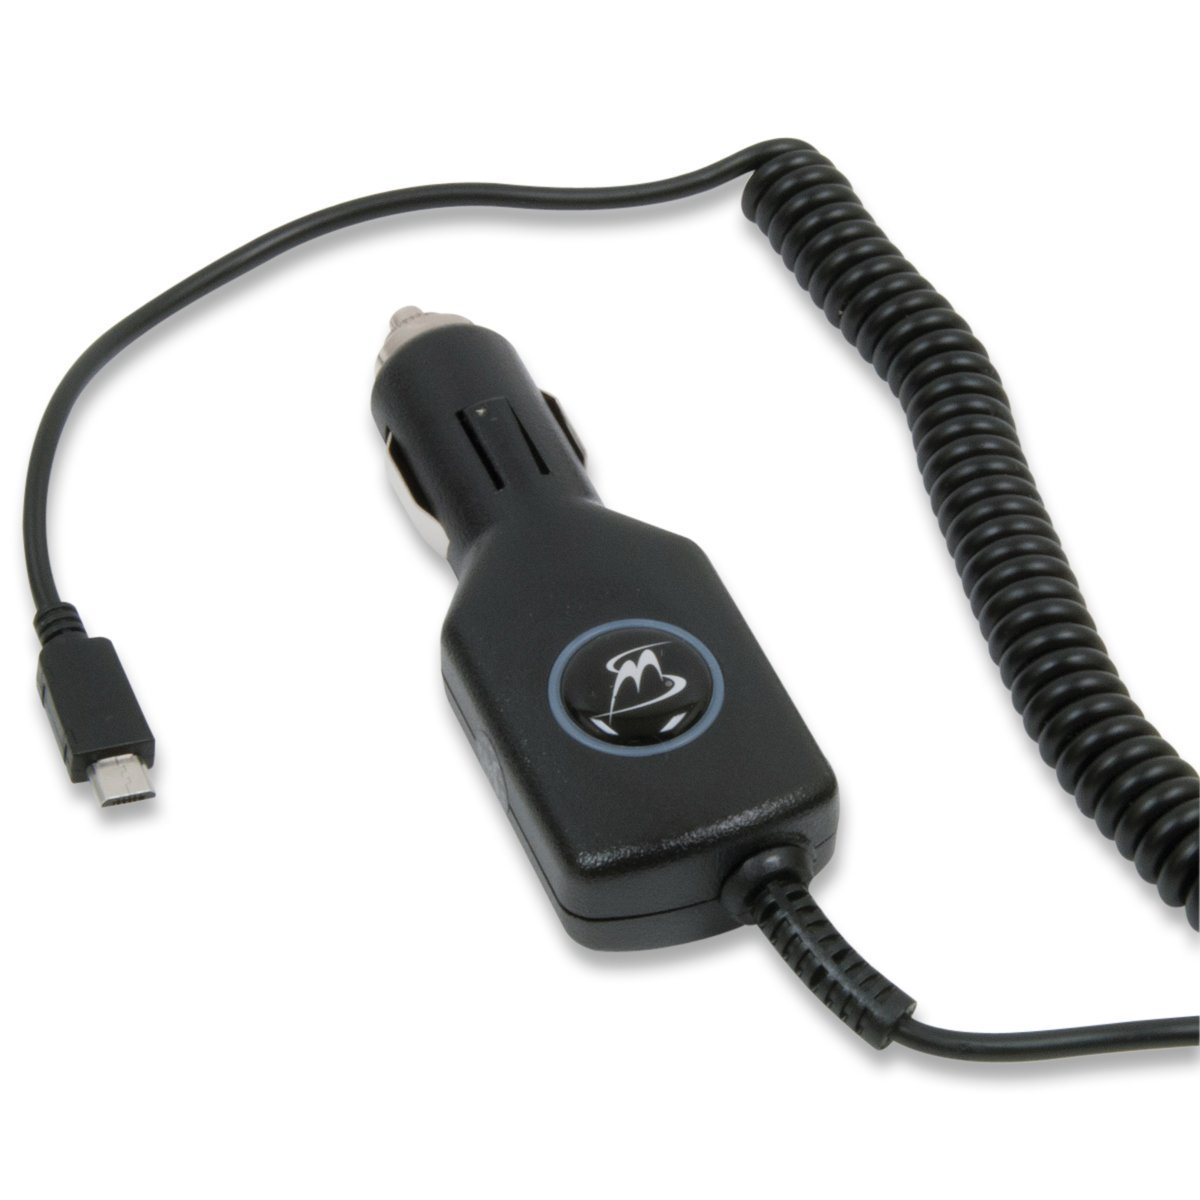 VXi BlueParrott C400-XT Bluetooth Headset -INCLUDES- MobileSpec 12V Replacement Car Charger with Micro USB Adapter AND 5-Pack Blucoil Cable Ties (Black, C400-XT) by blucoil